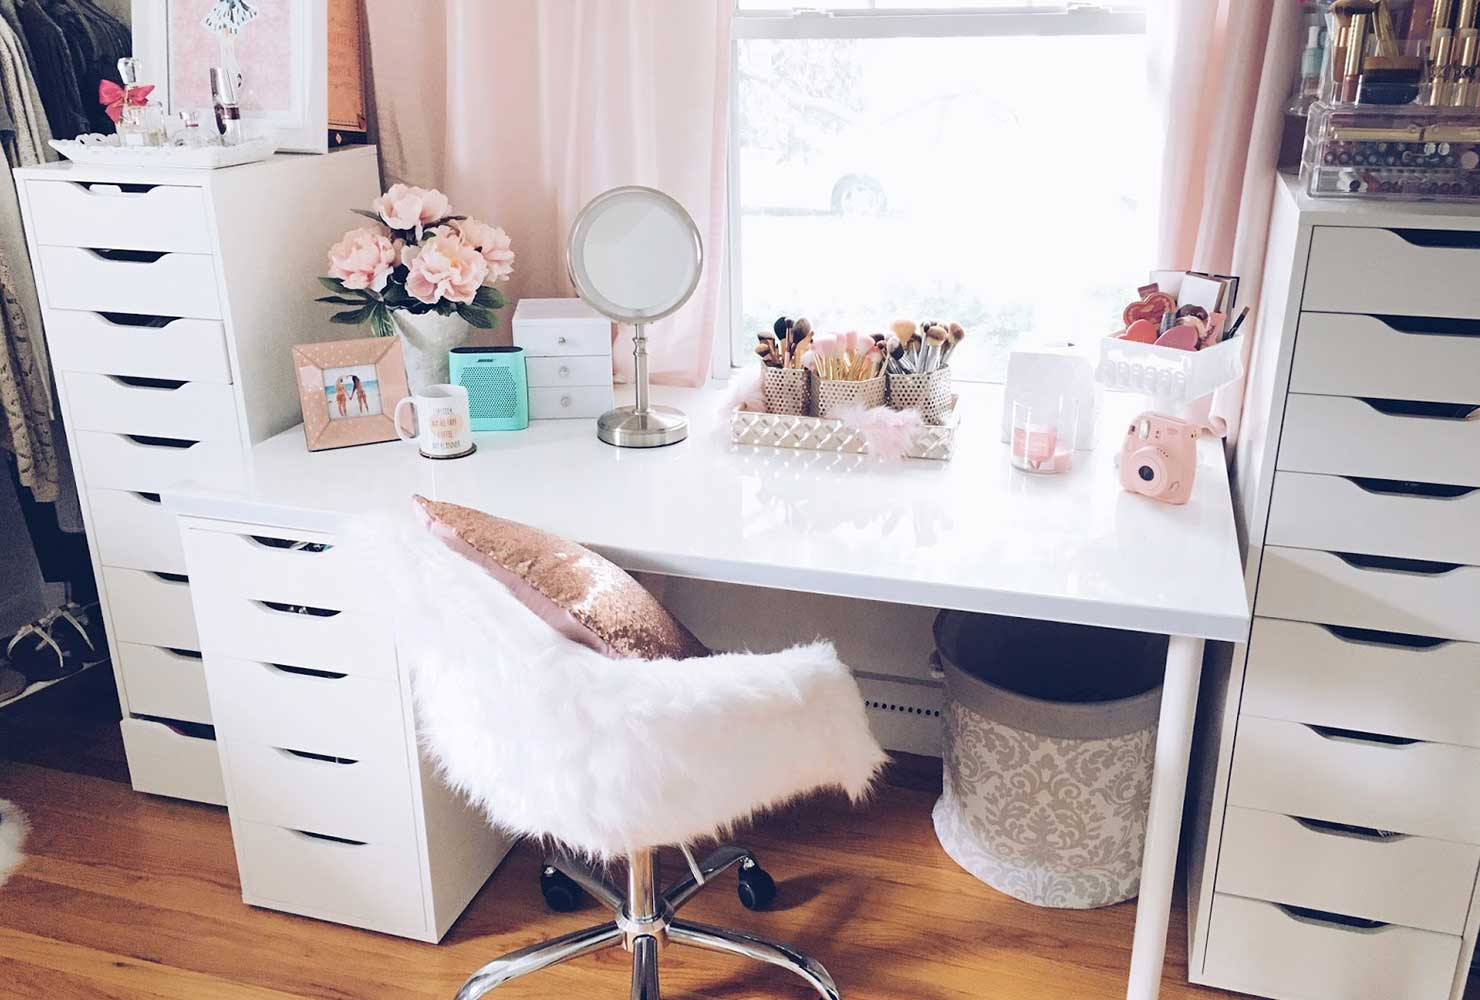 35 Makeup Room Ideas To Brighten Your Morning Routine ... on Makeup Room Ideas  id=14689